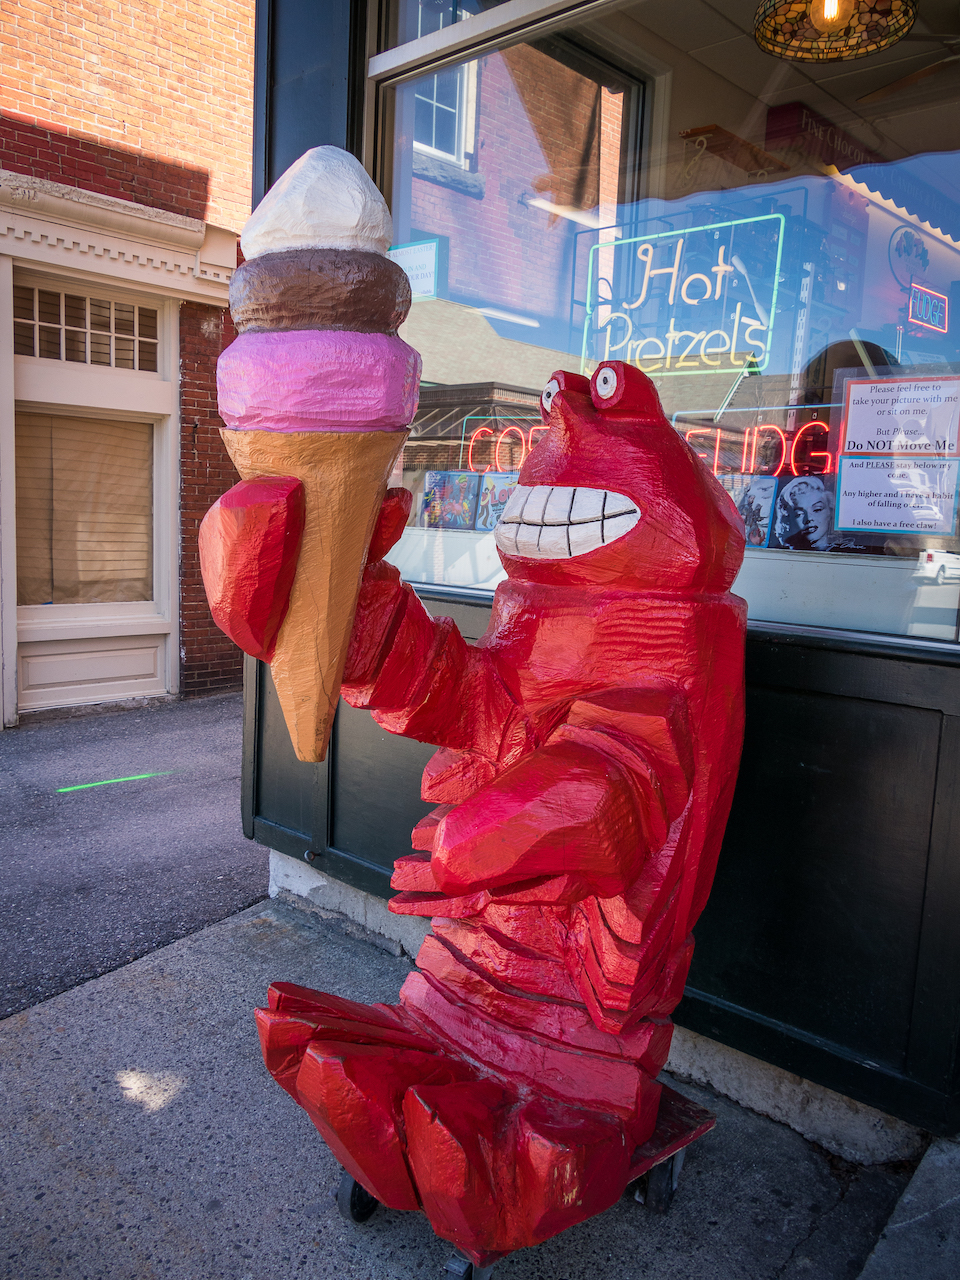 A large red carved wooden model of a lobster holds an ice cream